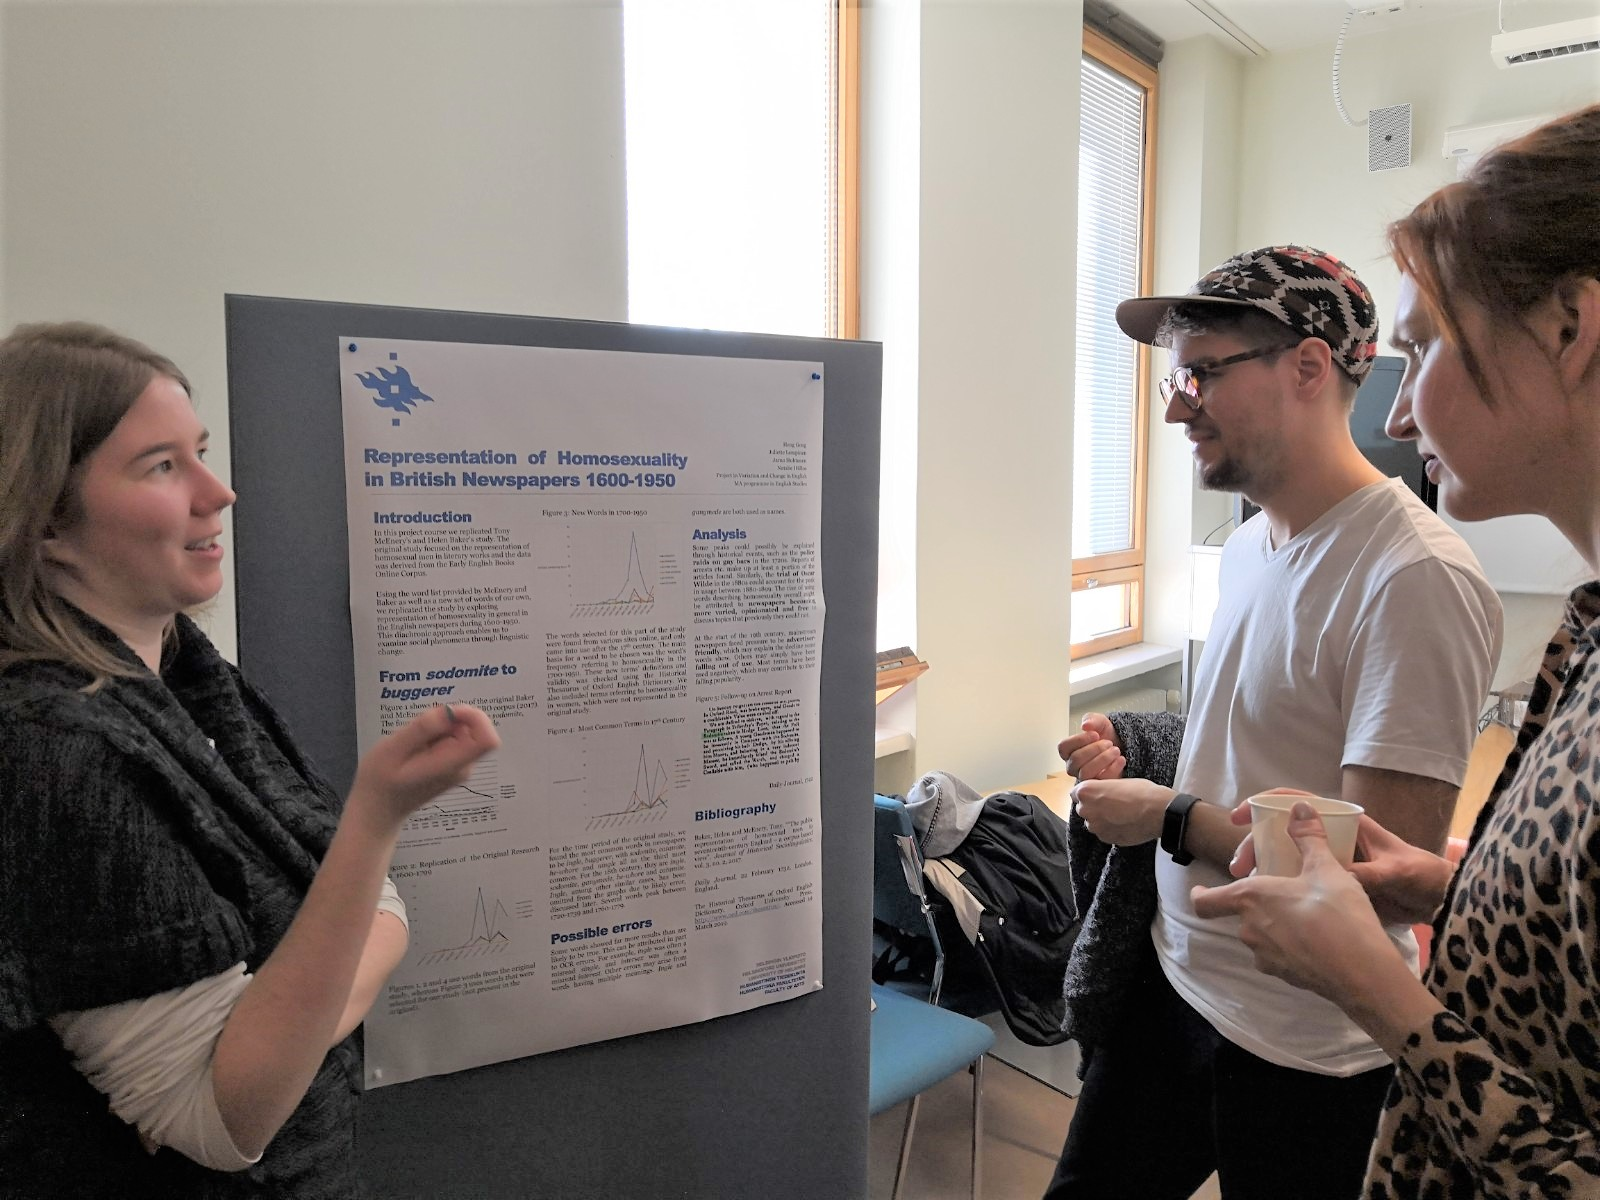 From Archives to Arguments – a Project Course at the University of Helsinki makes use of the Gale Digital Scholar Lab